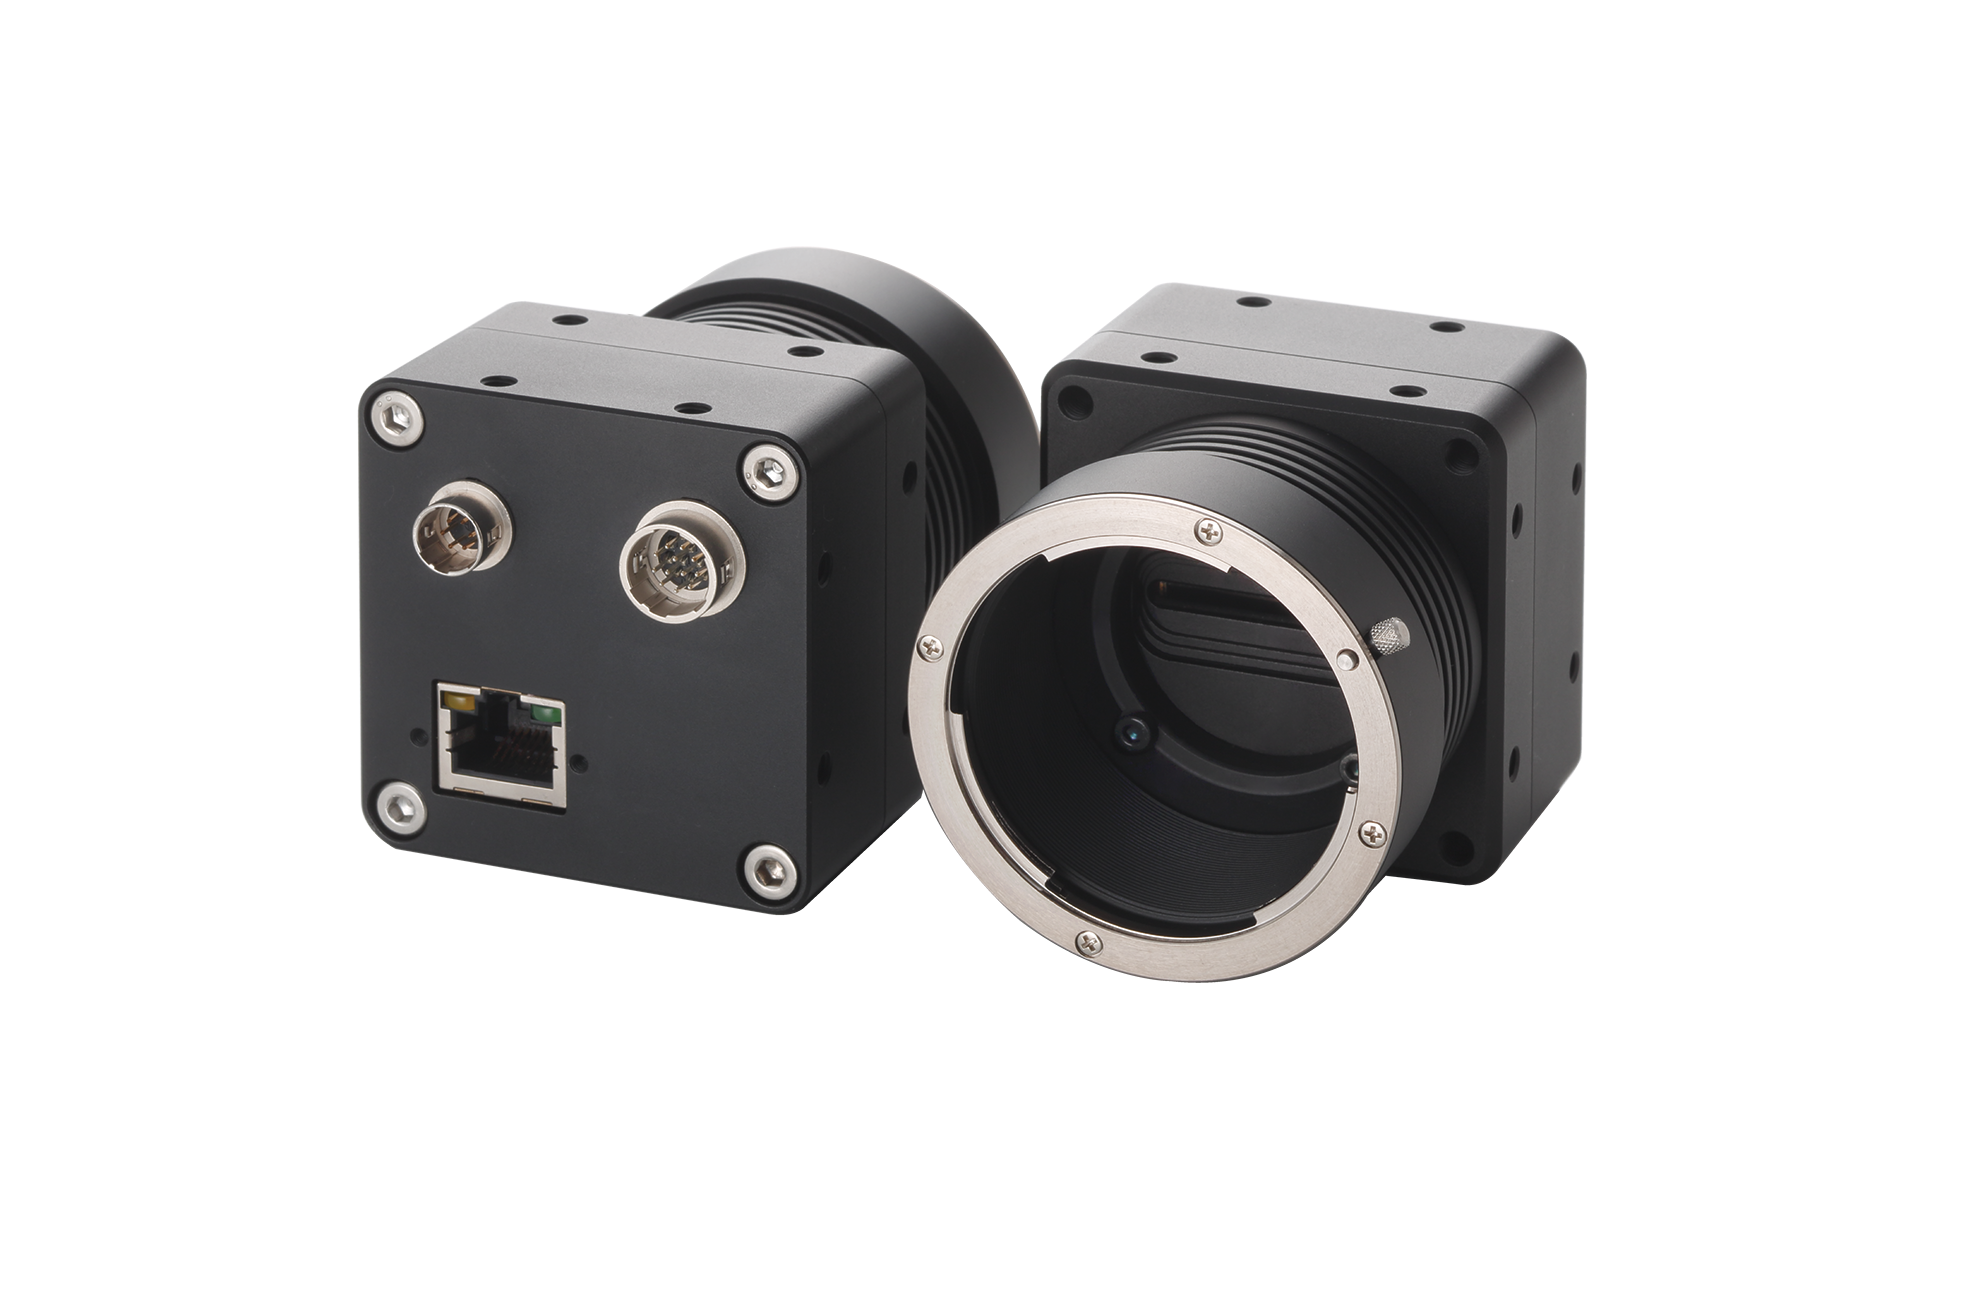 Line Scan Cameras Feature Power over Ethernet Functionality